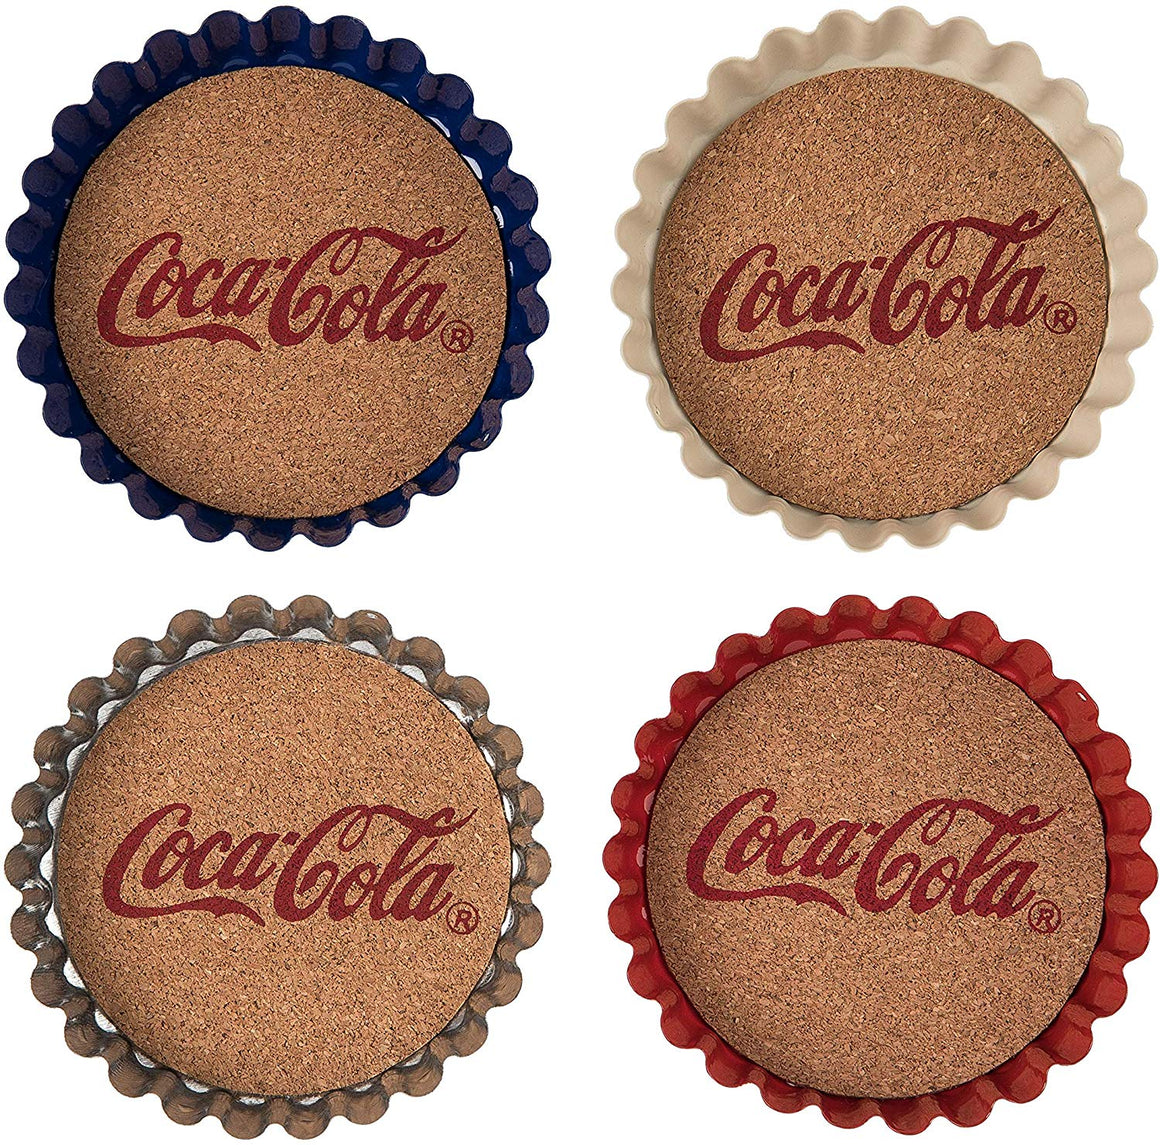 Set of 4 Coca Cola Metal Drink Coasters with Natural Cork in Red, White, Blue and Silver Metal